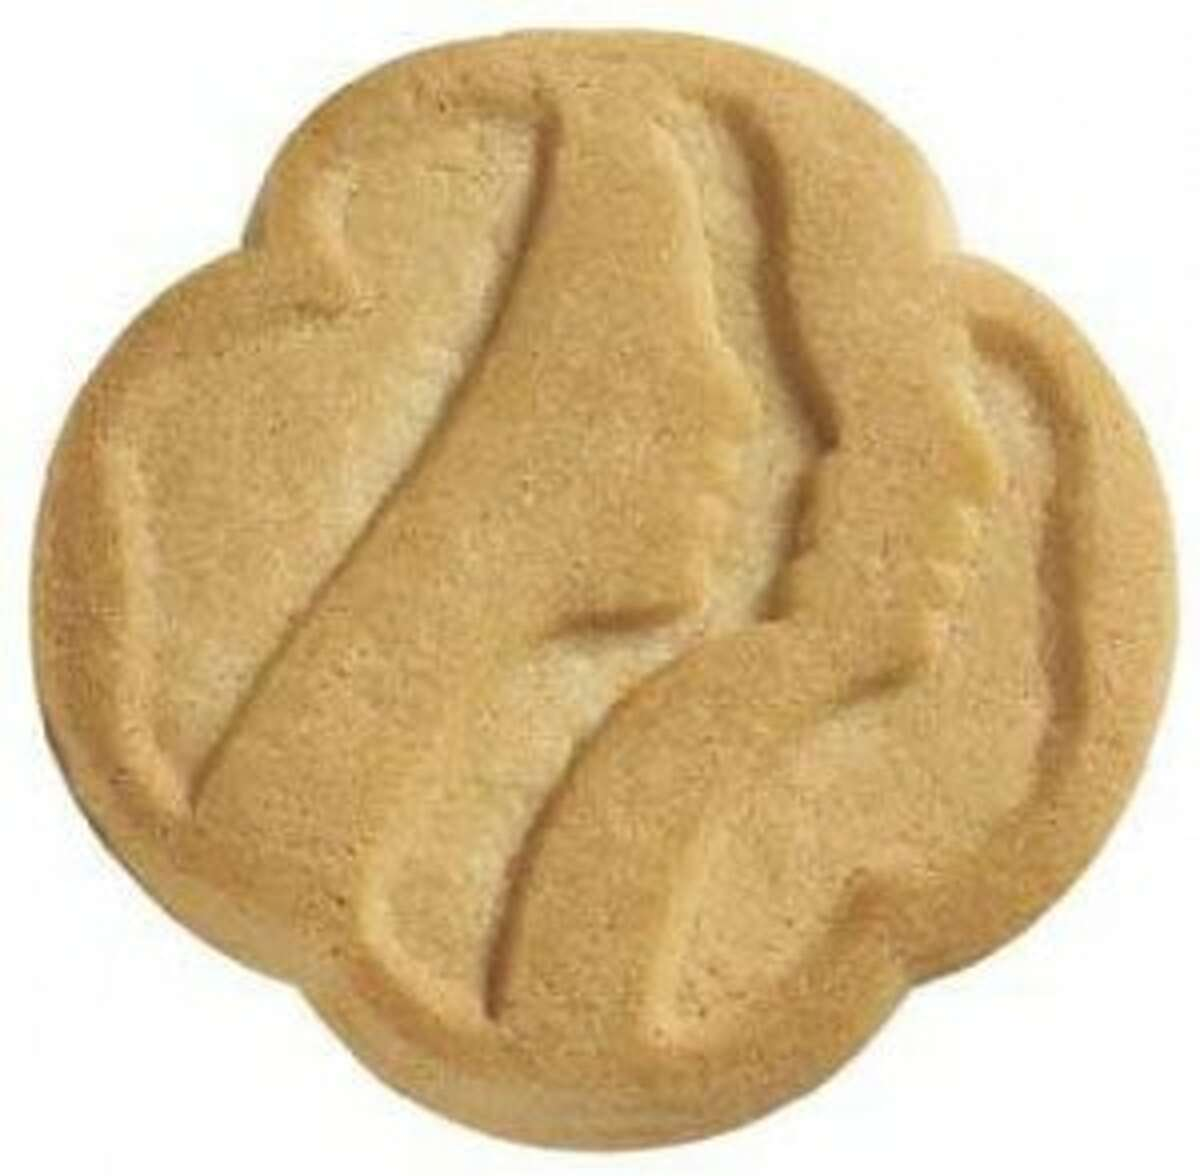 Shortbread cookies are one of the most iconic of Girl Scout Cookies.